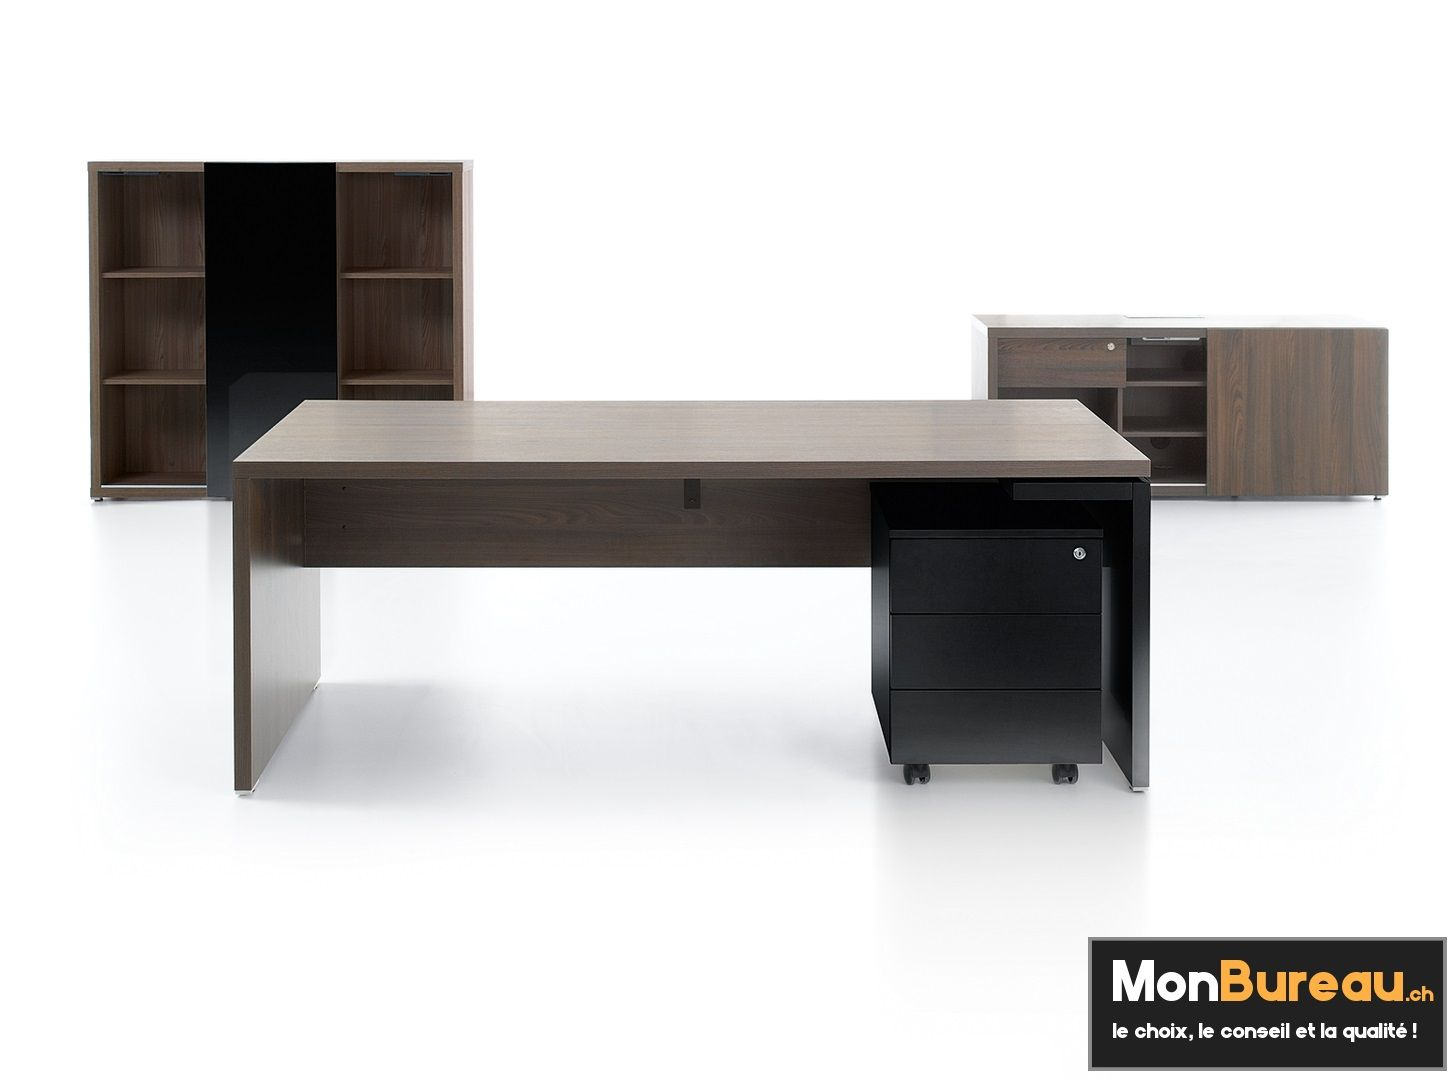 Monbureau mdd mito bureau de direction executive